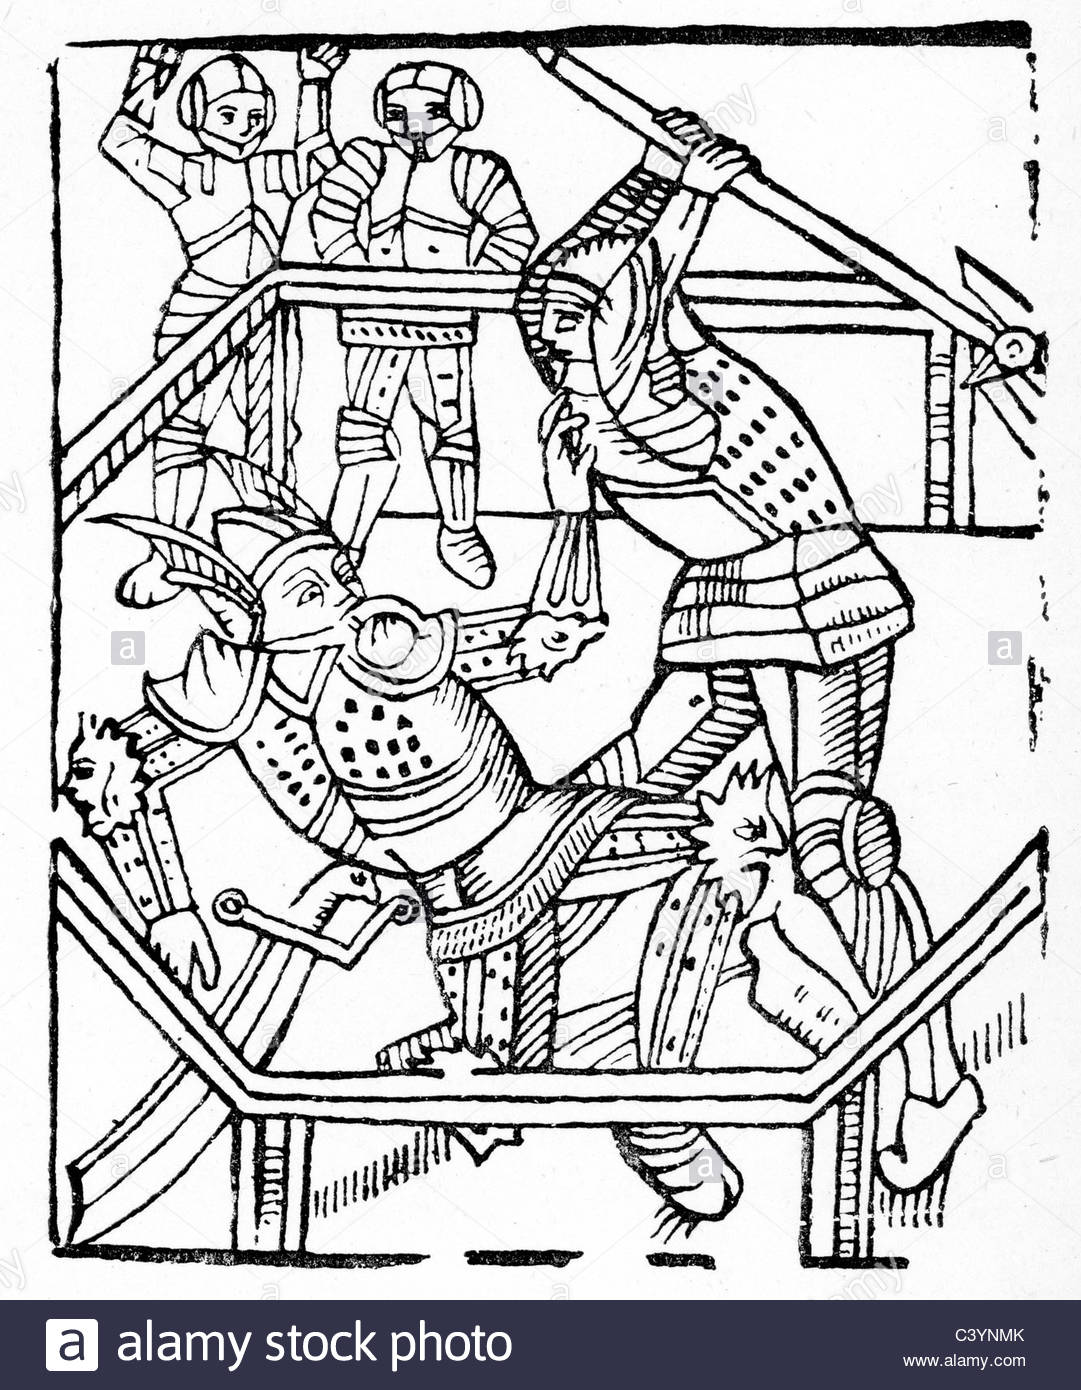 1081x1390 Medieval Woodcut From The Story Of The Knight Of The Swan. Combat